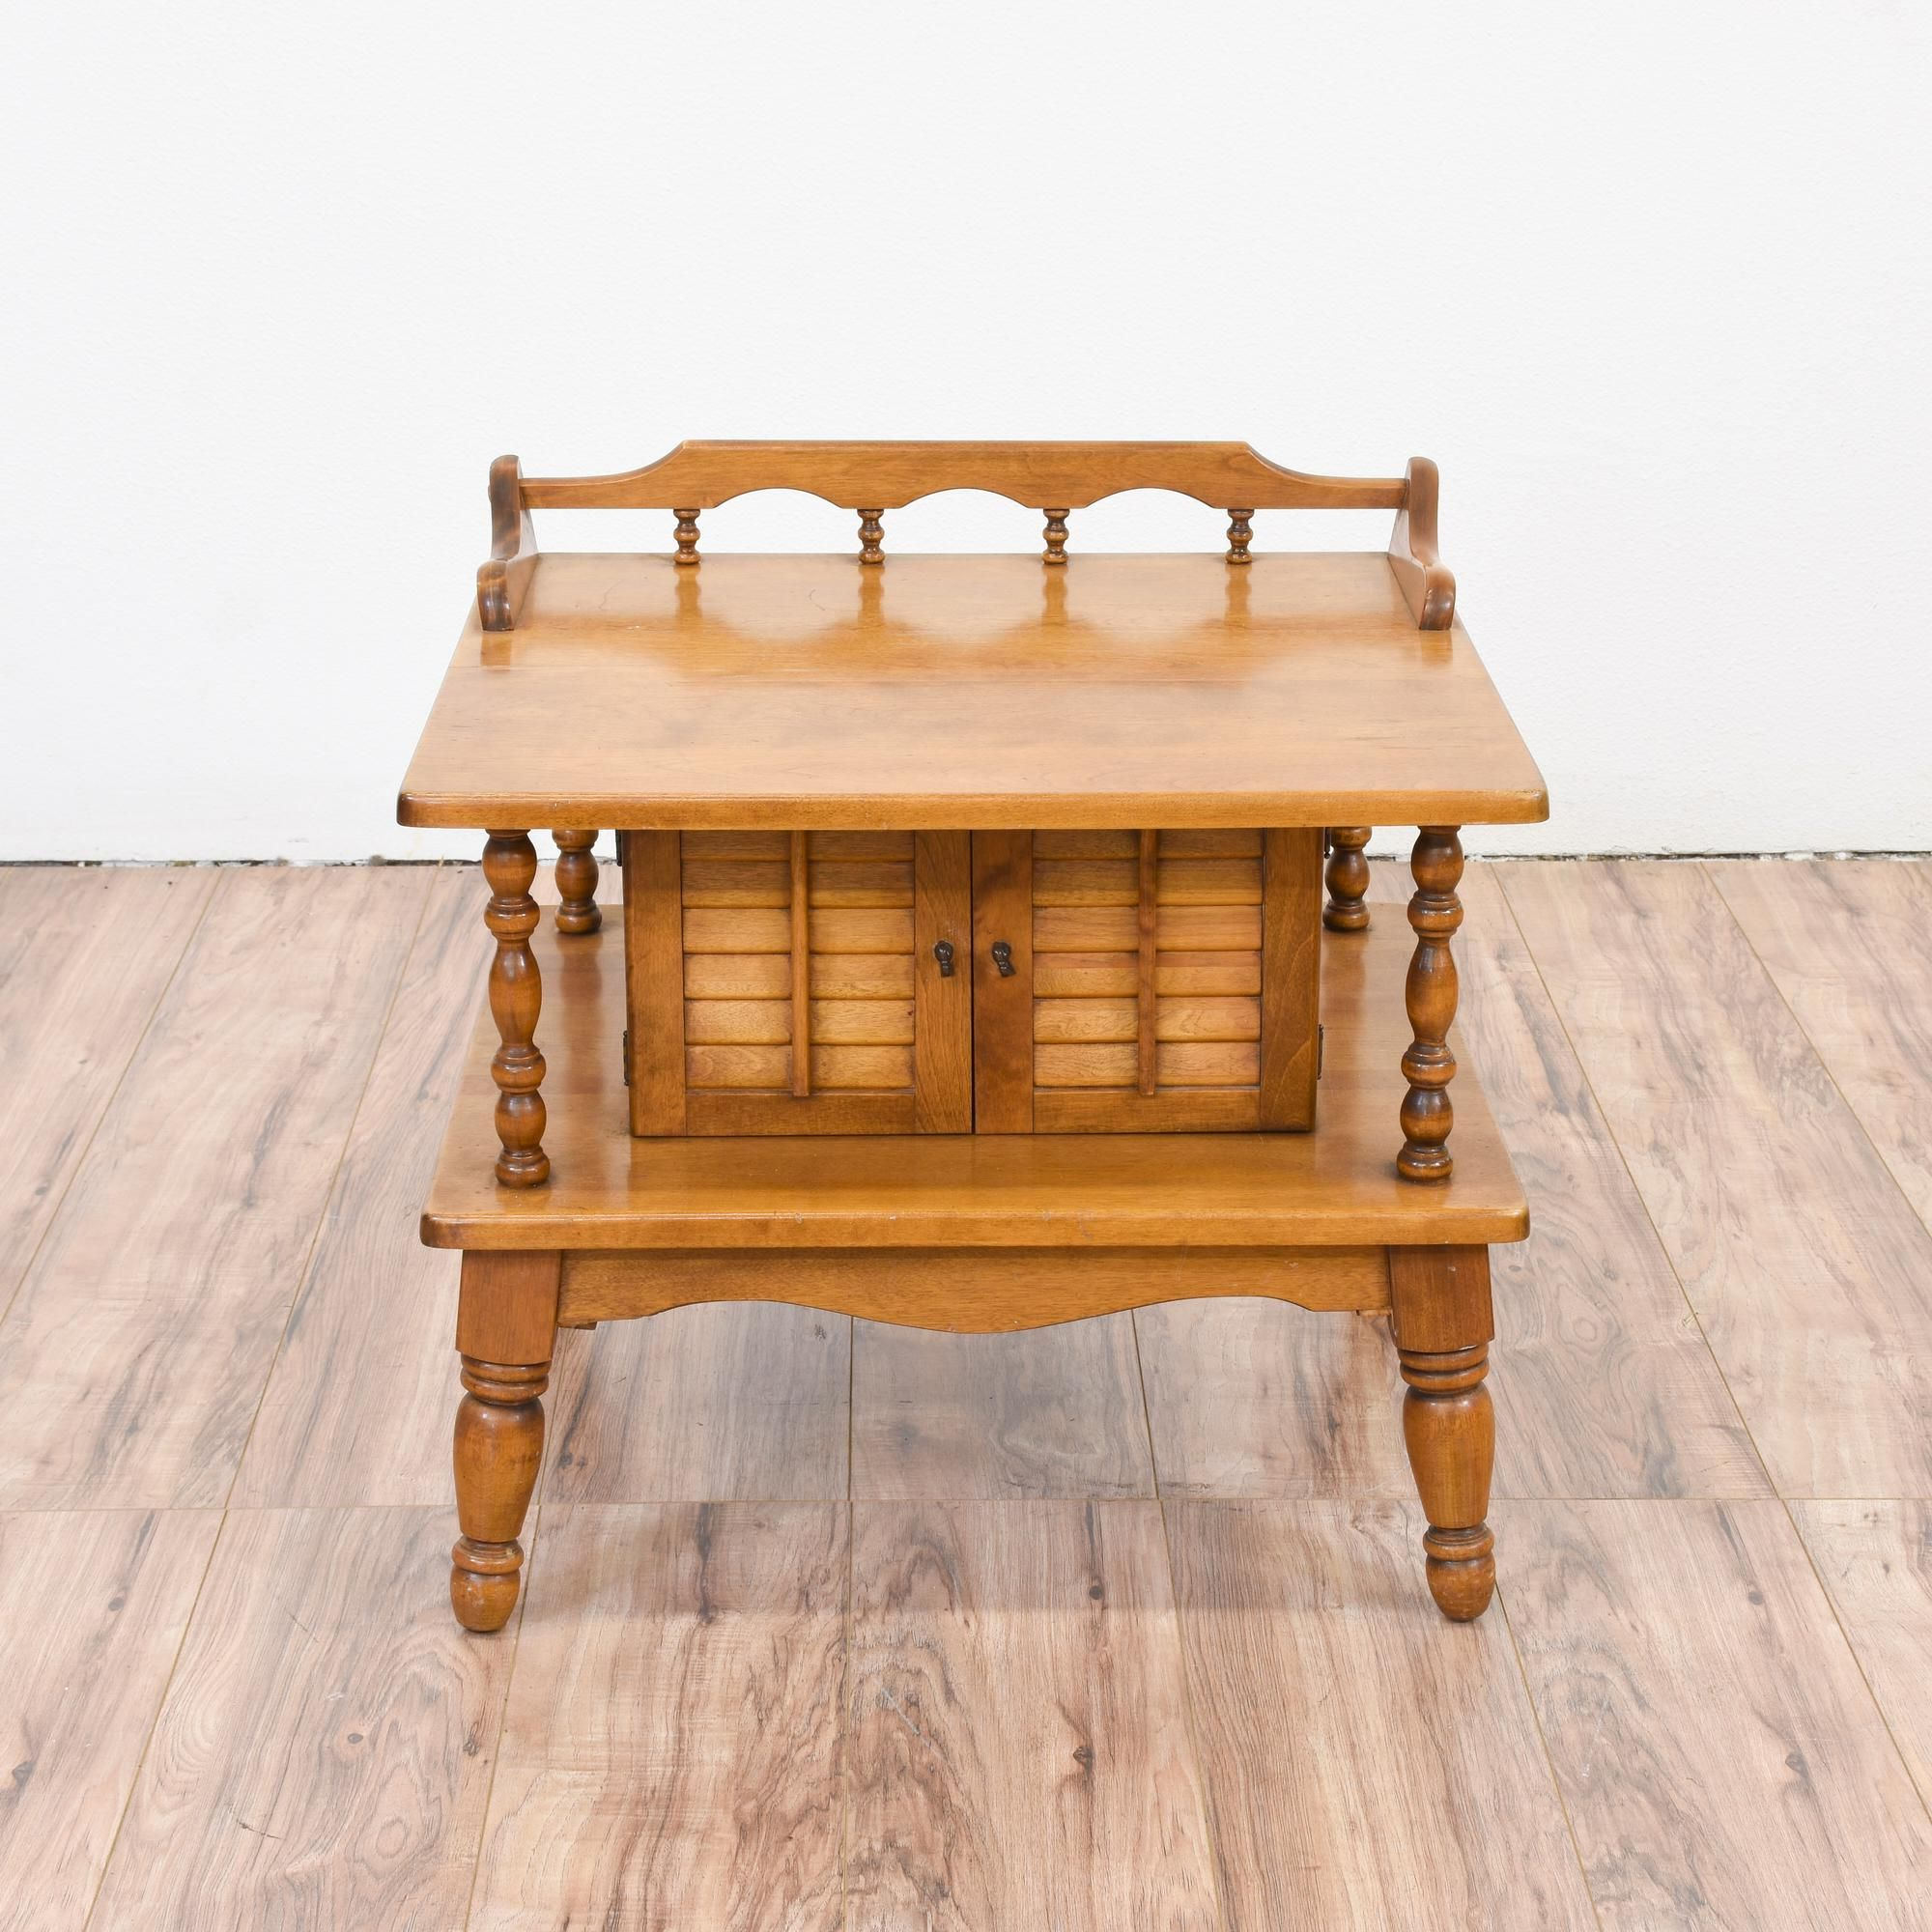 This colonial end table is featured in a solid wood with a glossy